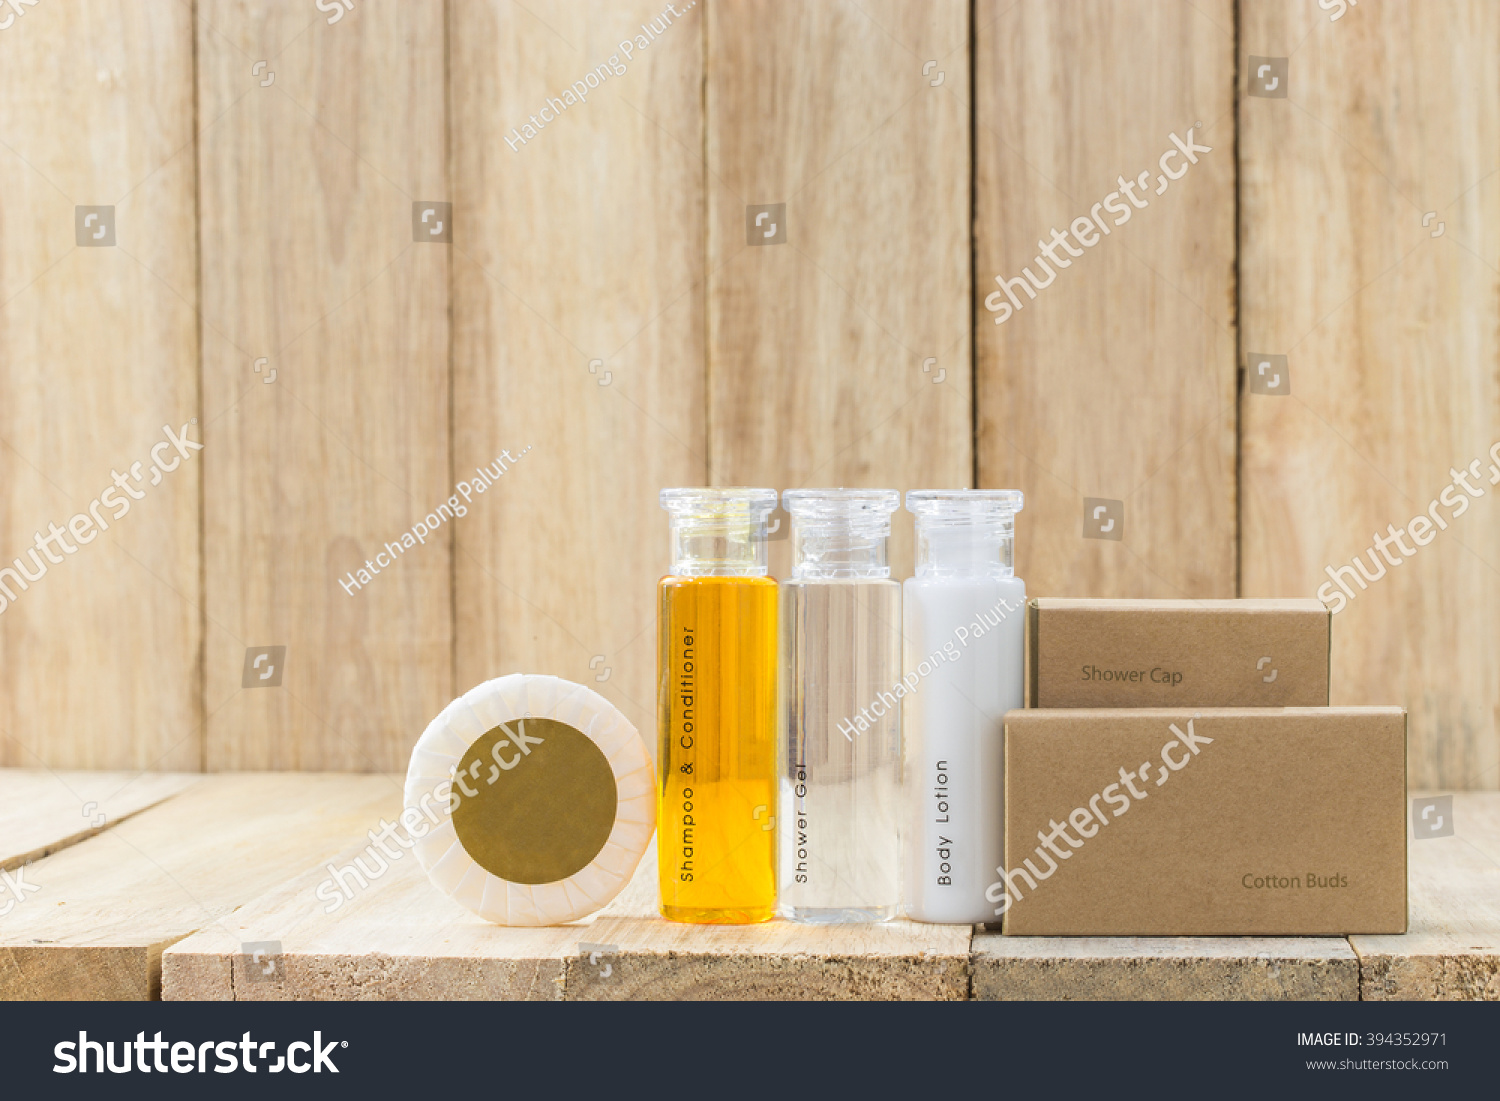 Tubes Bathroom Amenity Contains On Wooden Stock Photo Royalty Free - Bathroom tubes